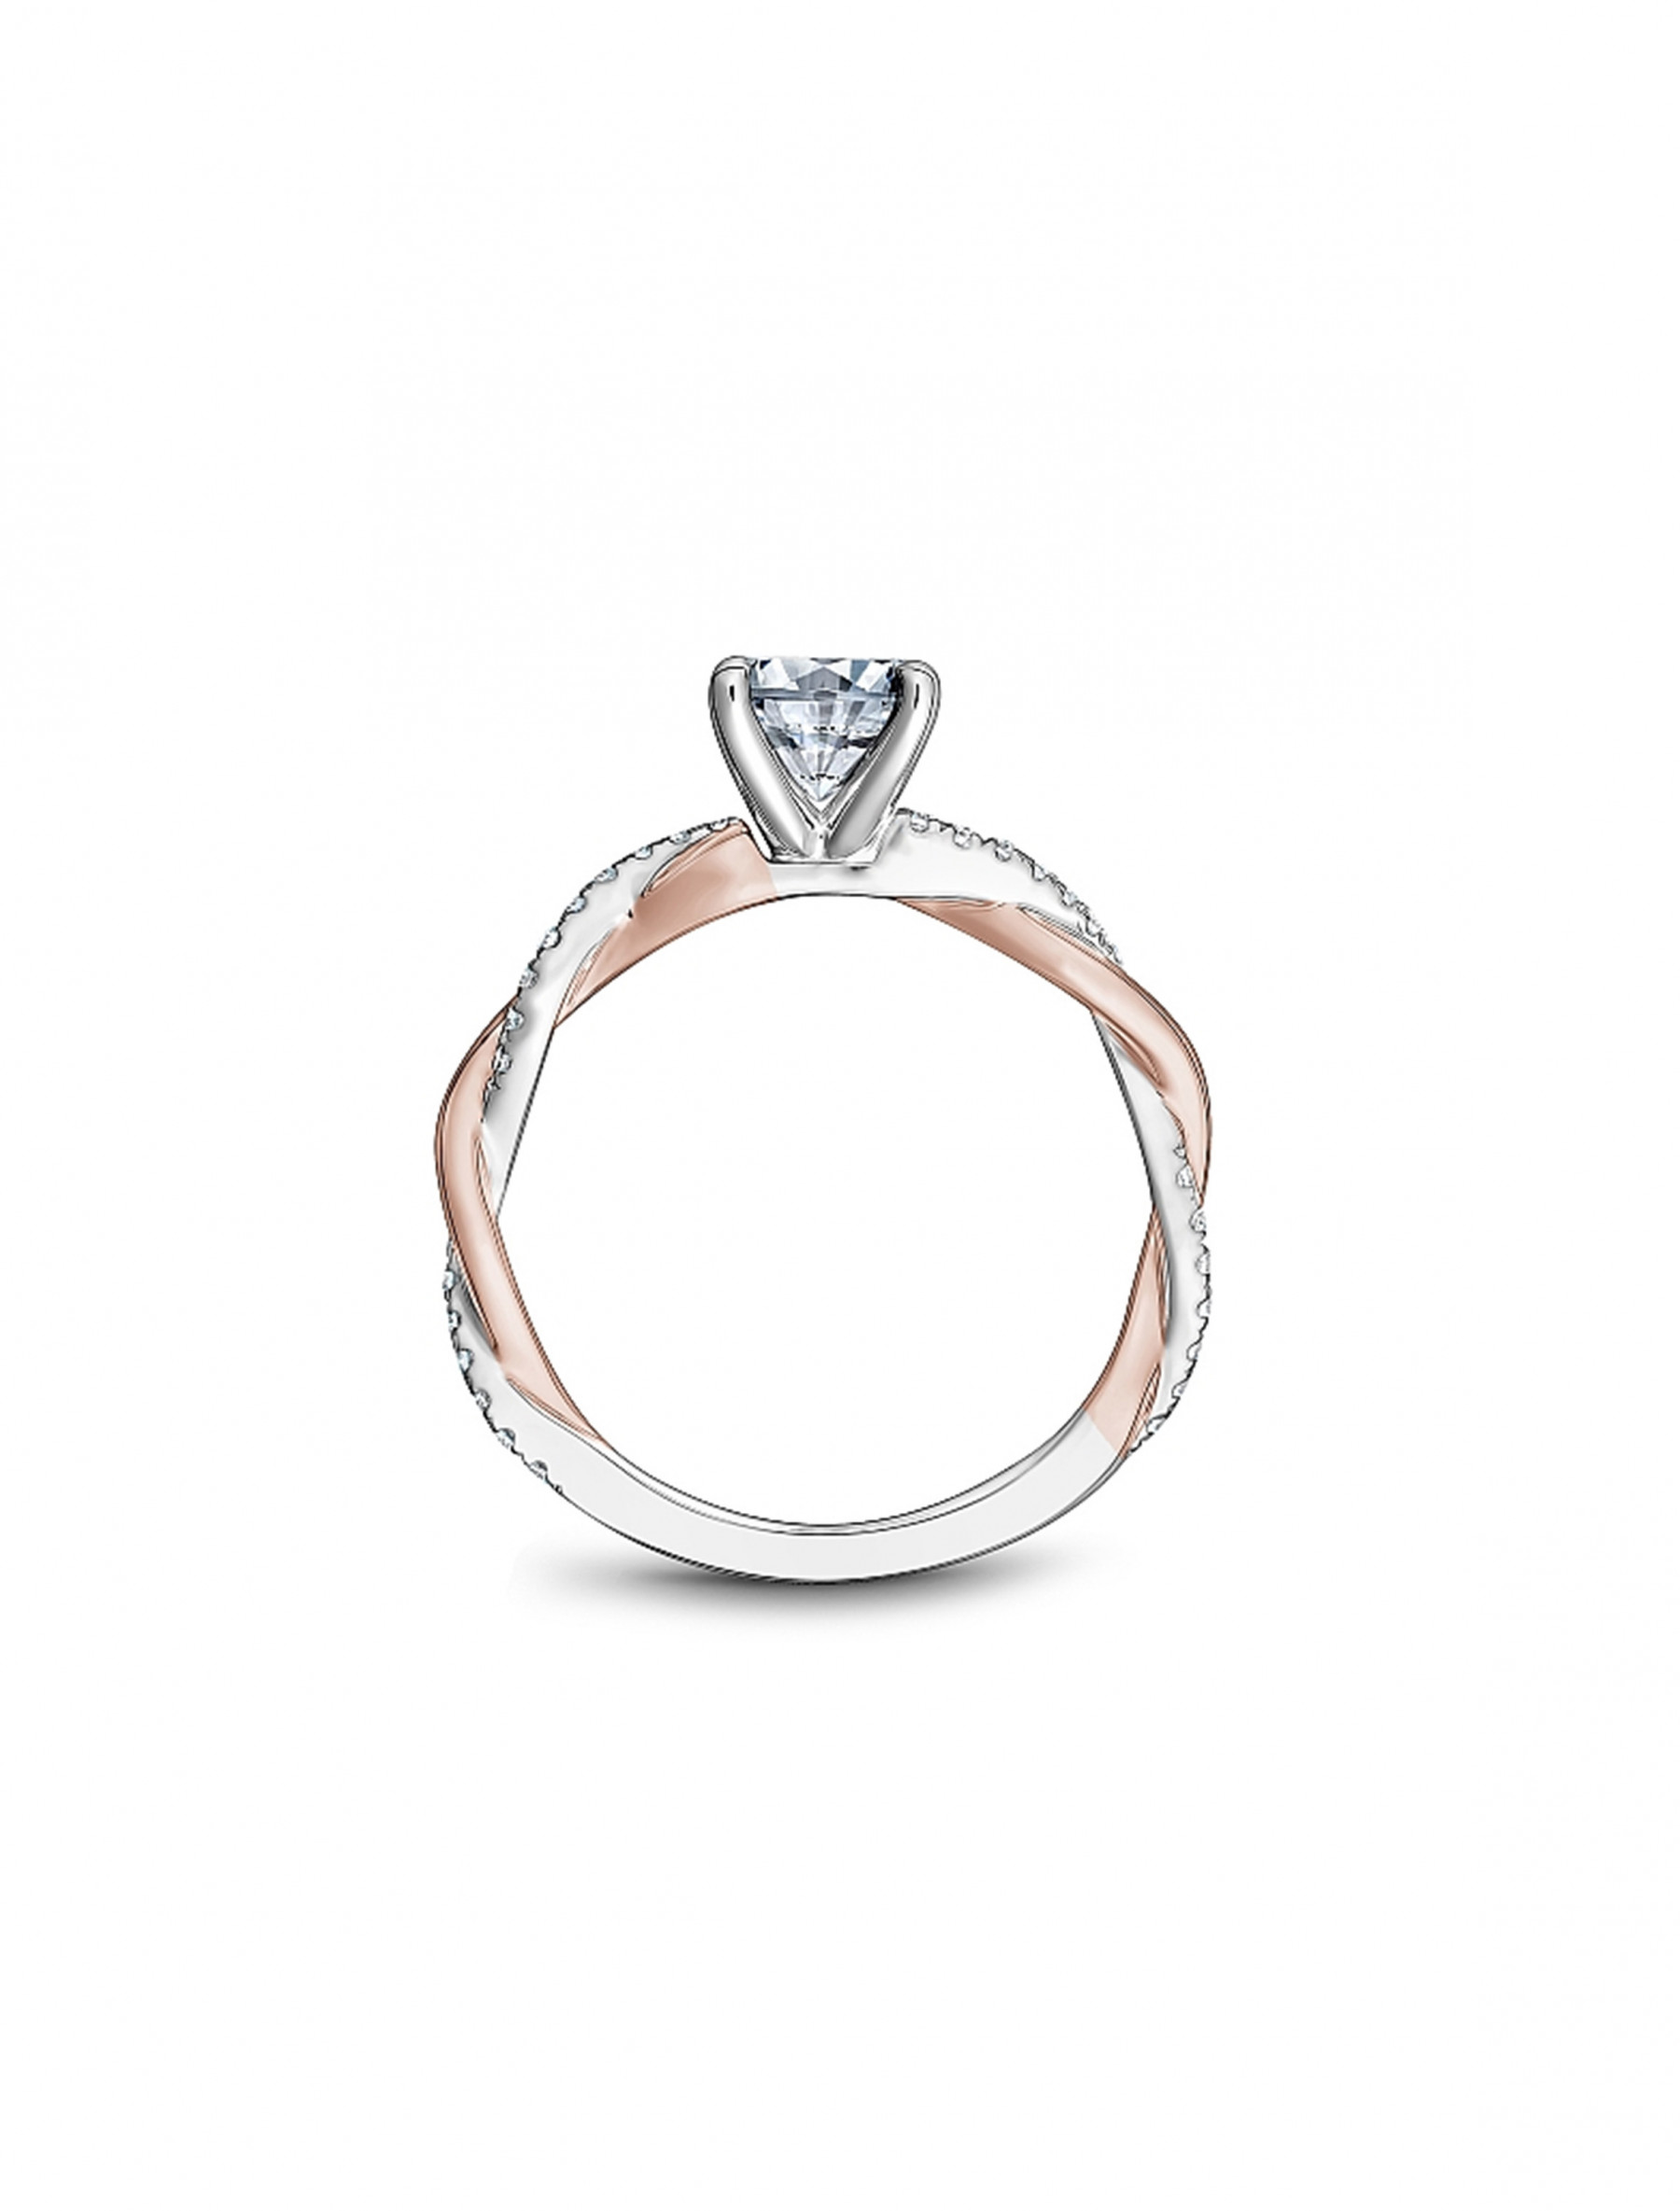 Noam Carver Round Twisted Two Tone Engagement Ring Setting in 18K Gold side view